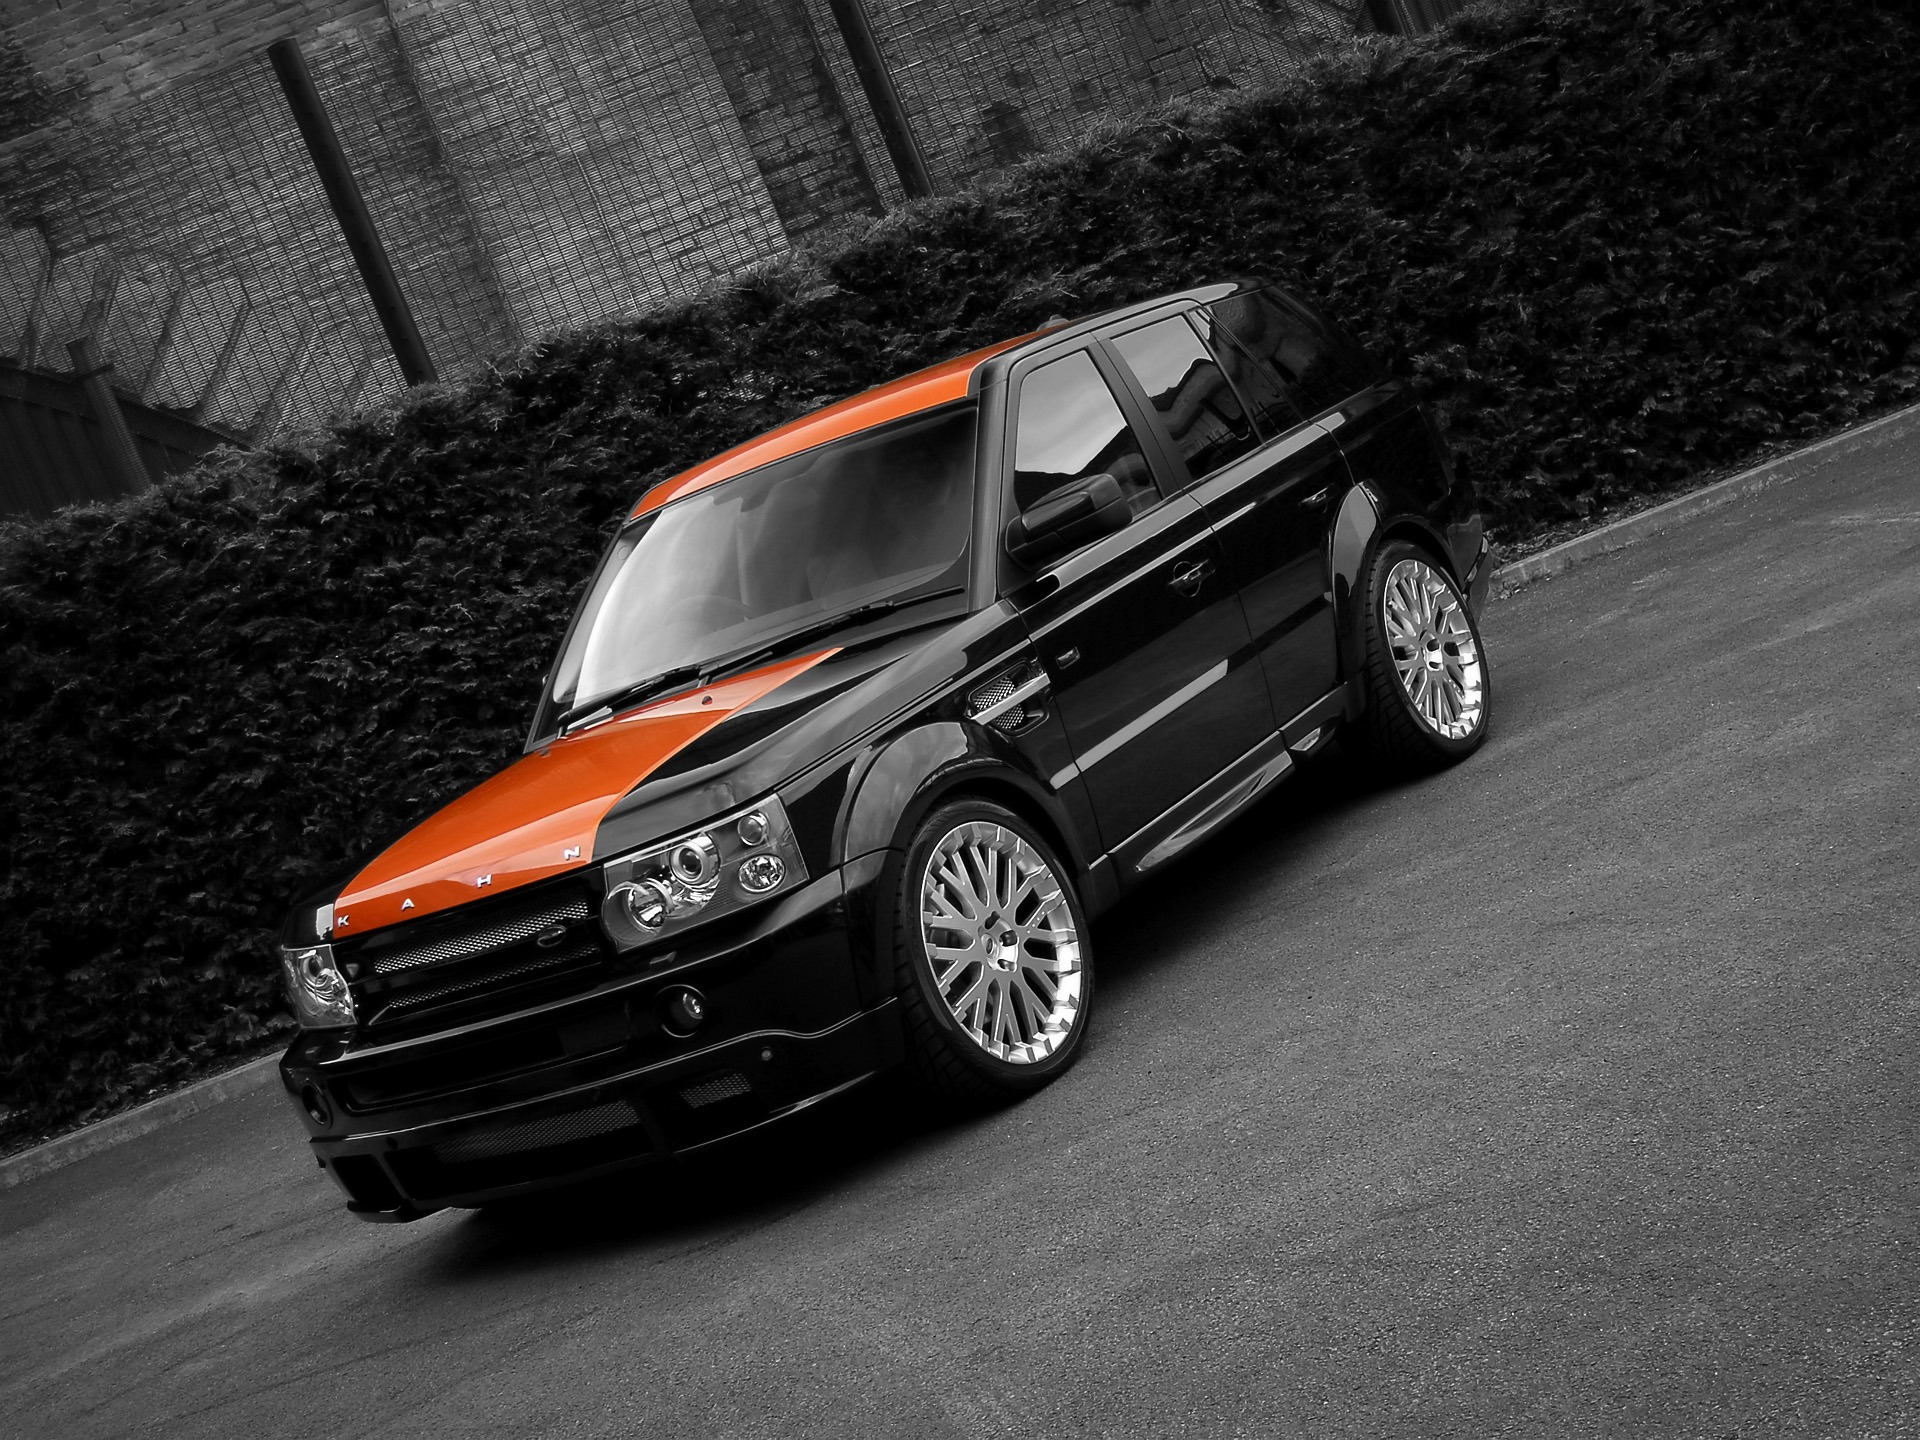 Pimped Range Rover Sport Wallpaper Range Rover Cars Wallpapers In